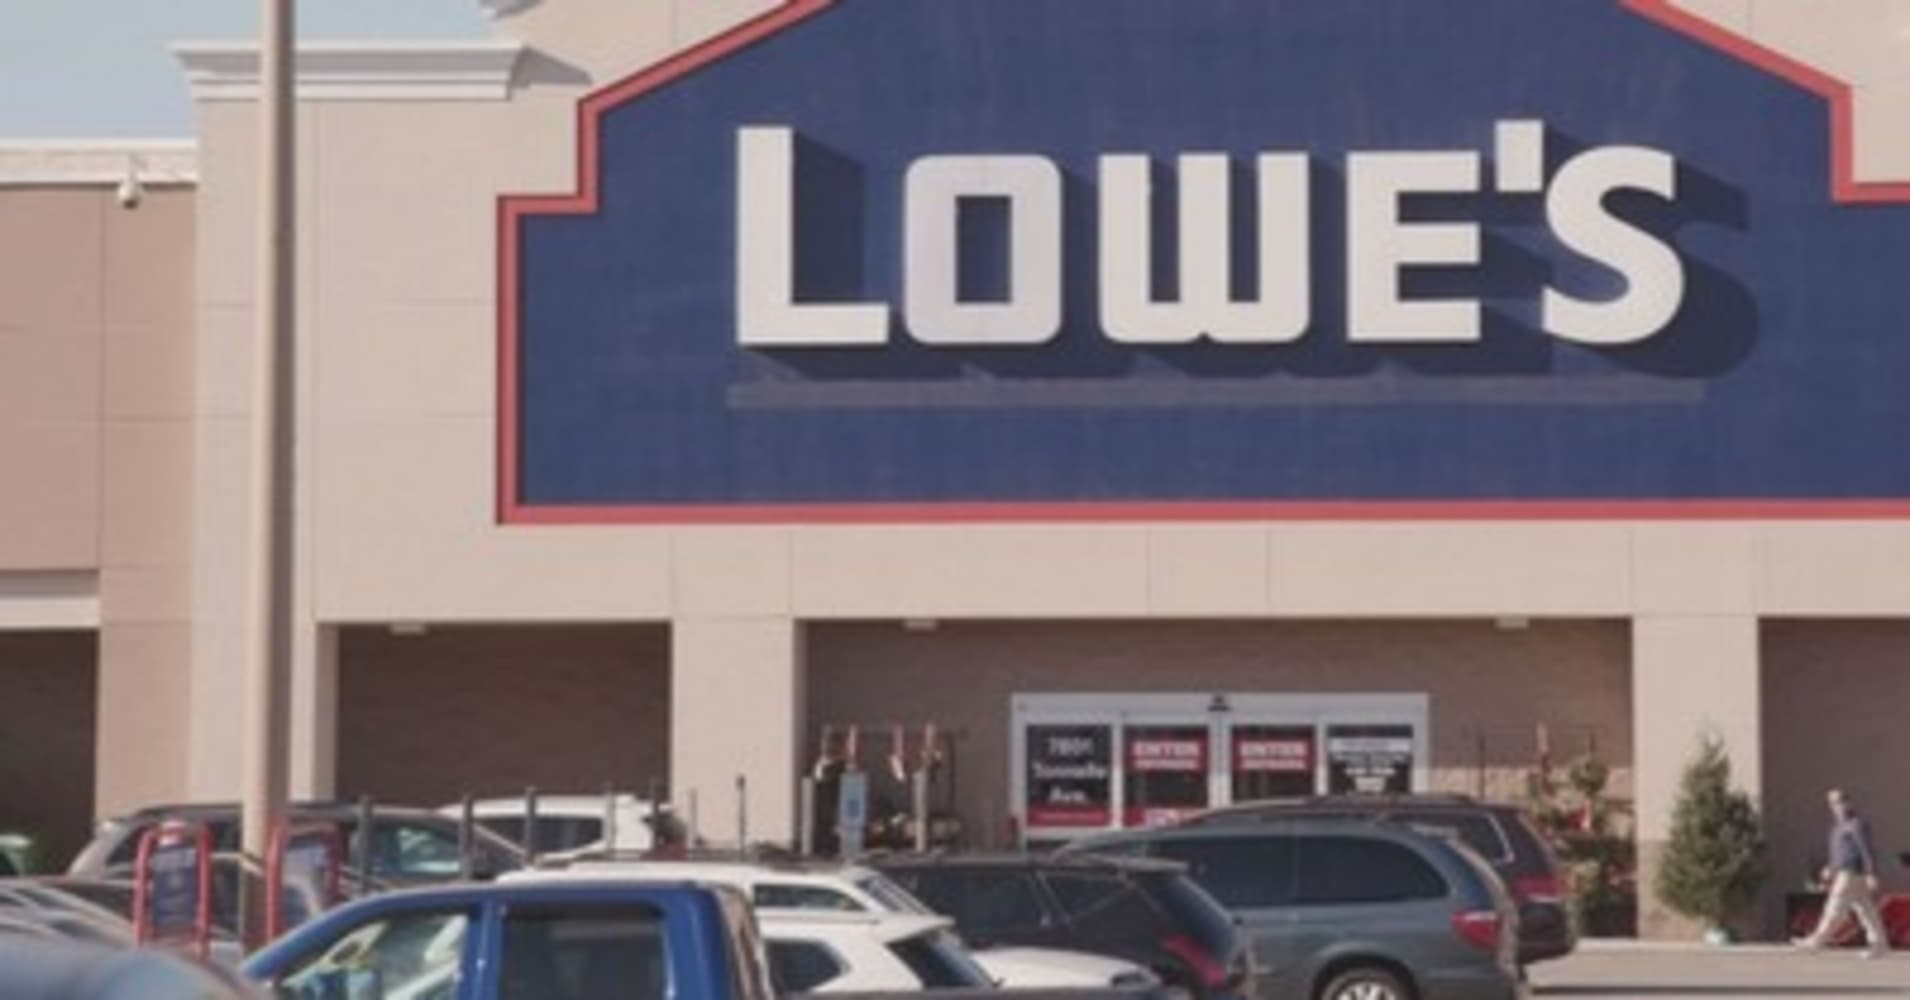 Lowe's looks to hire 65,000 new employees this year